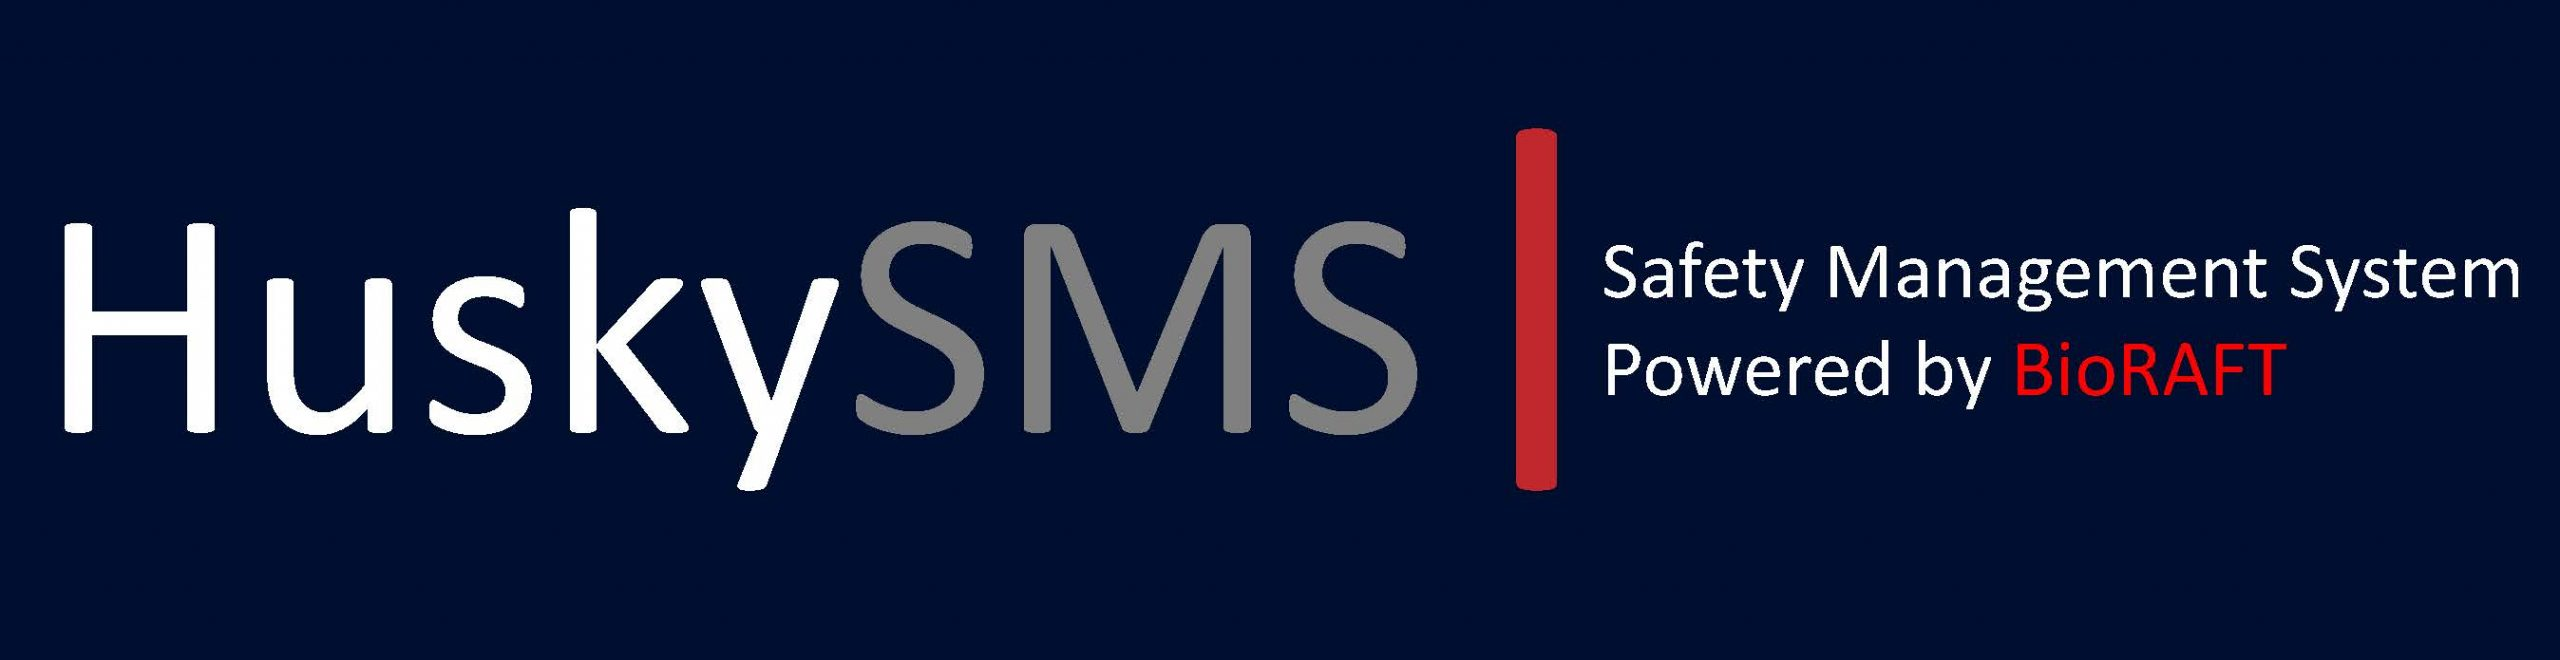 HuskySMS - Safety Management System Powered by BioRAFT